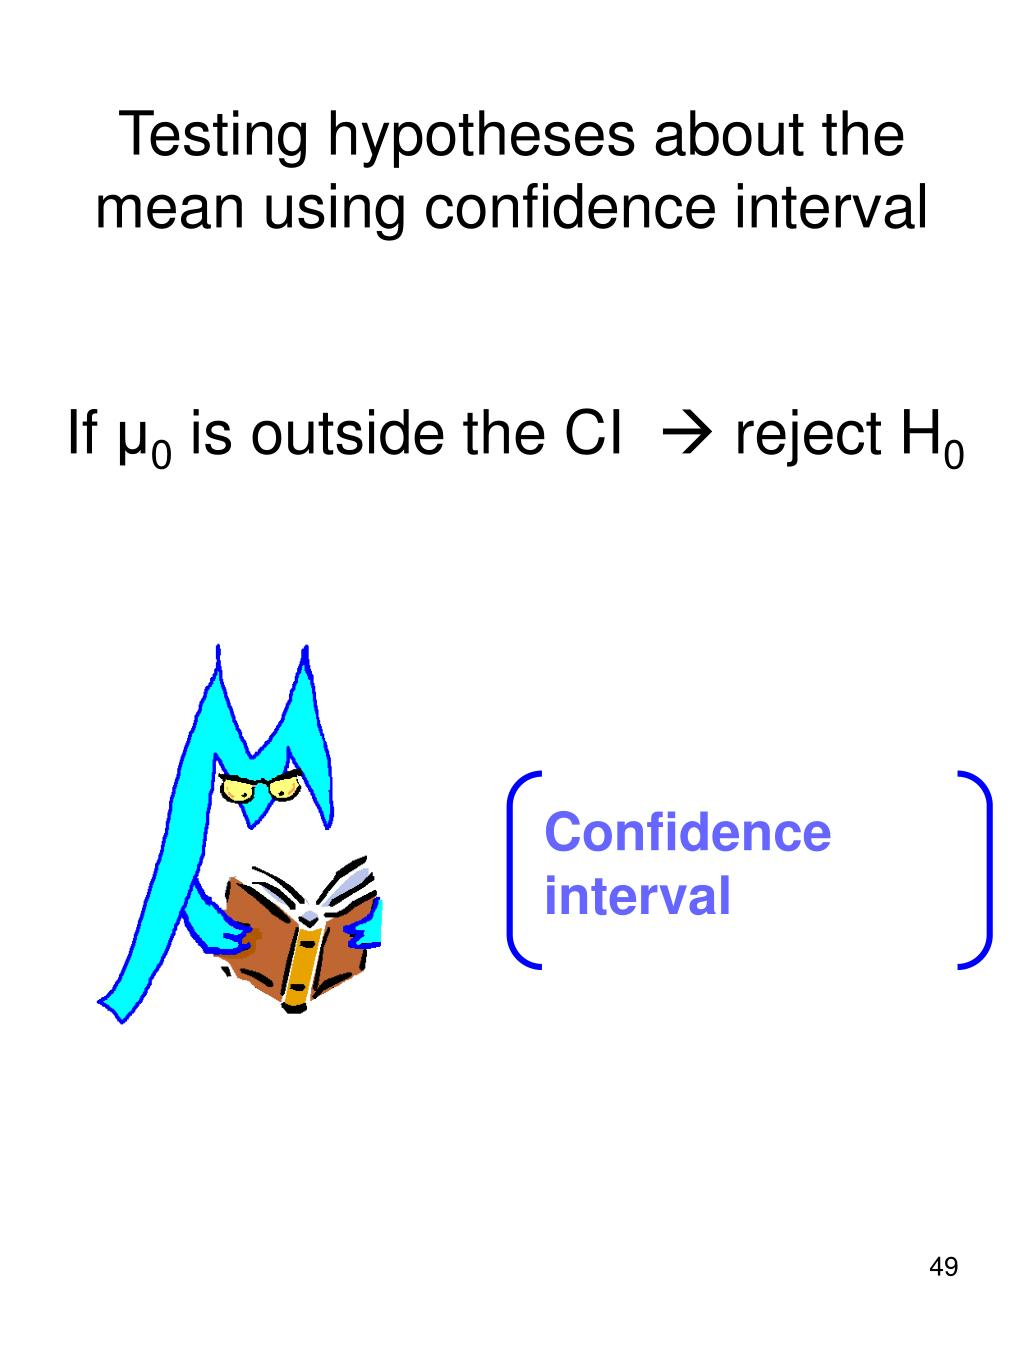 Testing hypotheses about the mean using confidence interval